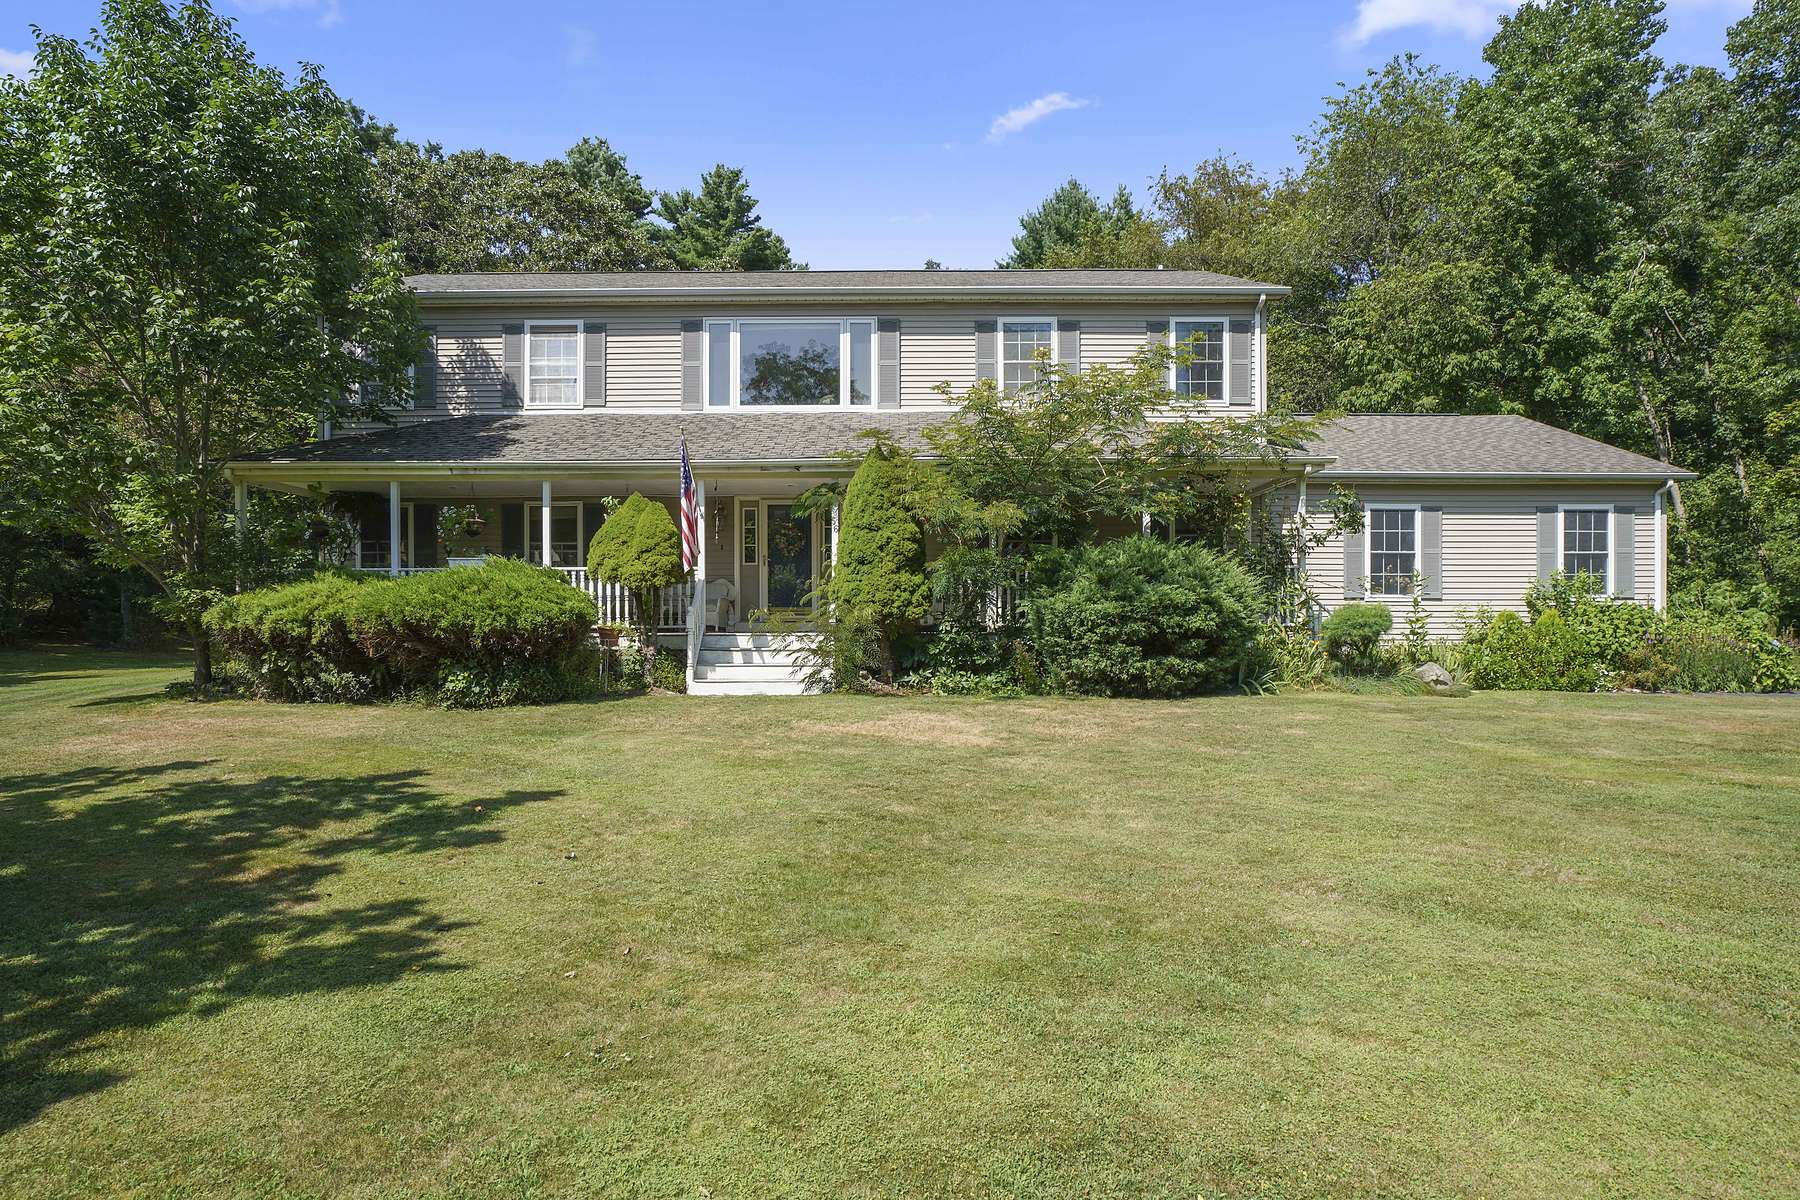 Single Family Homes for Sale at 56 Spring Street, Rehoboth 56 Spring Street Rehoboth, Massachusetts 02769 United States